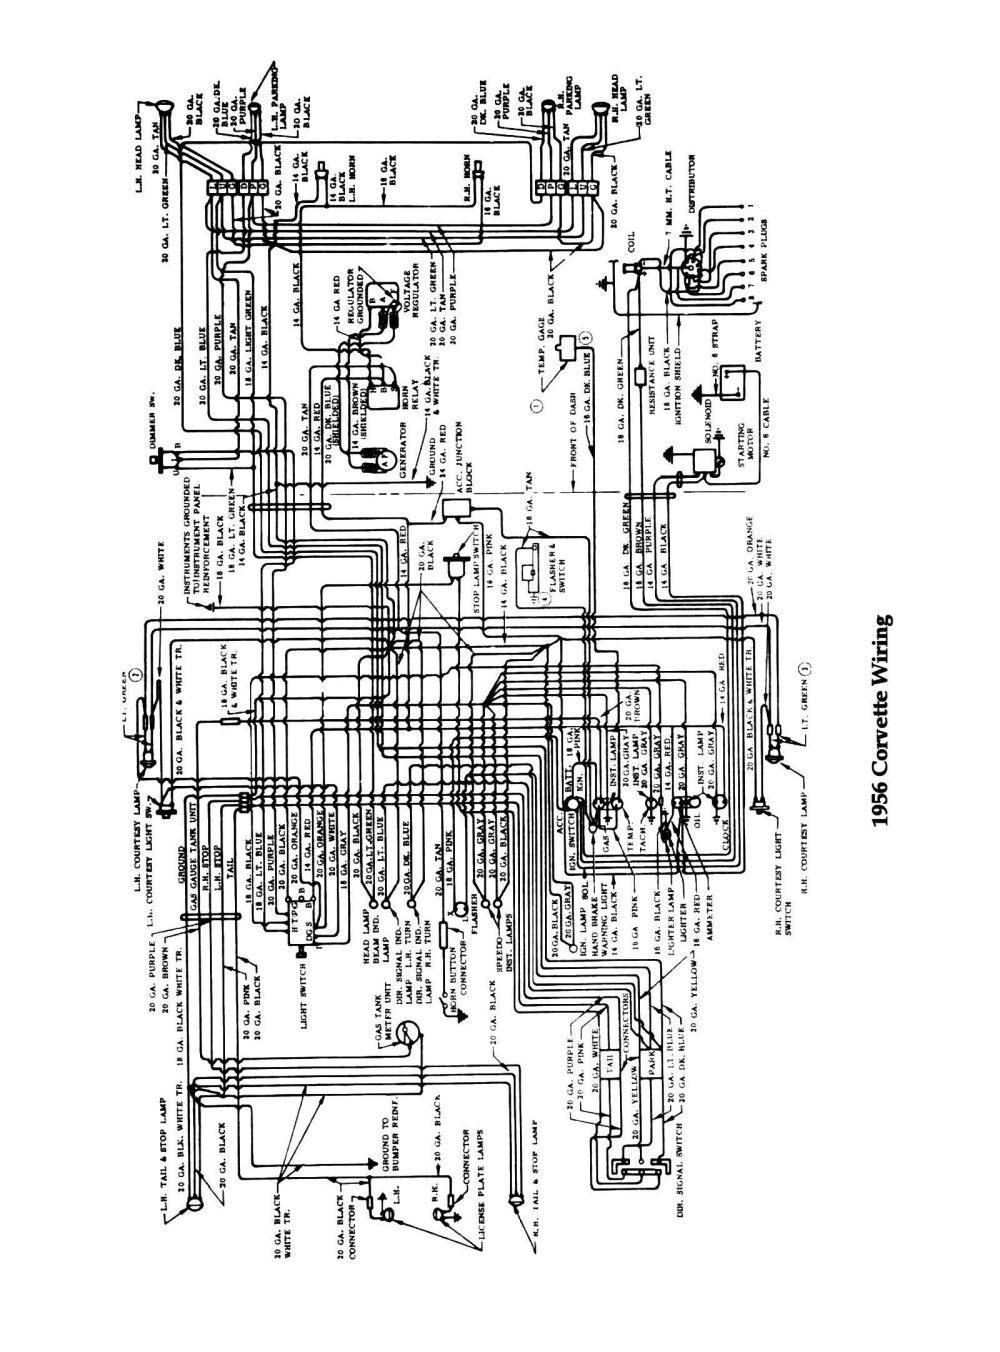 medium resolution of 1960 corvette wiring diagram wiring diagrams schema 1965 corvette wiring diagram 1960 corvette wiring diagram